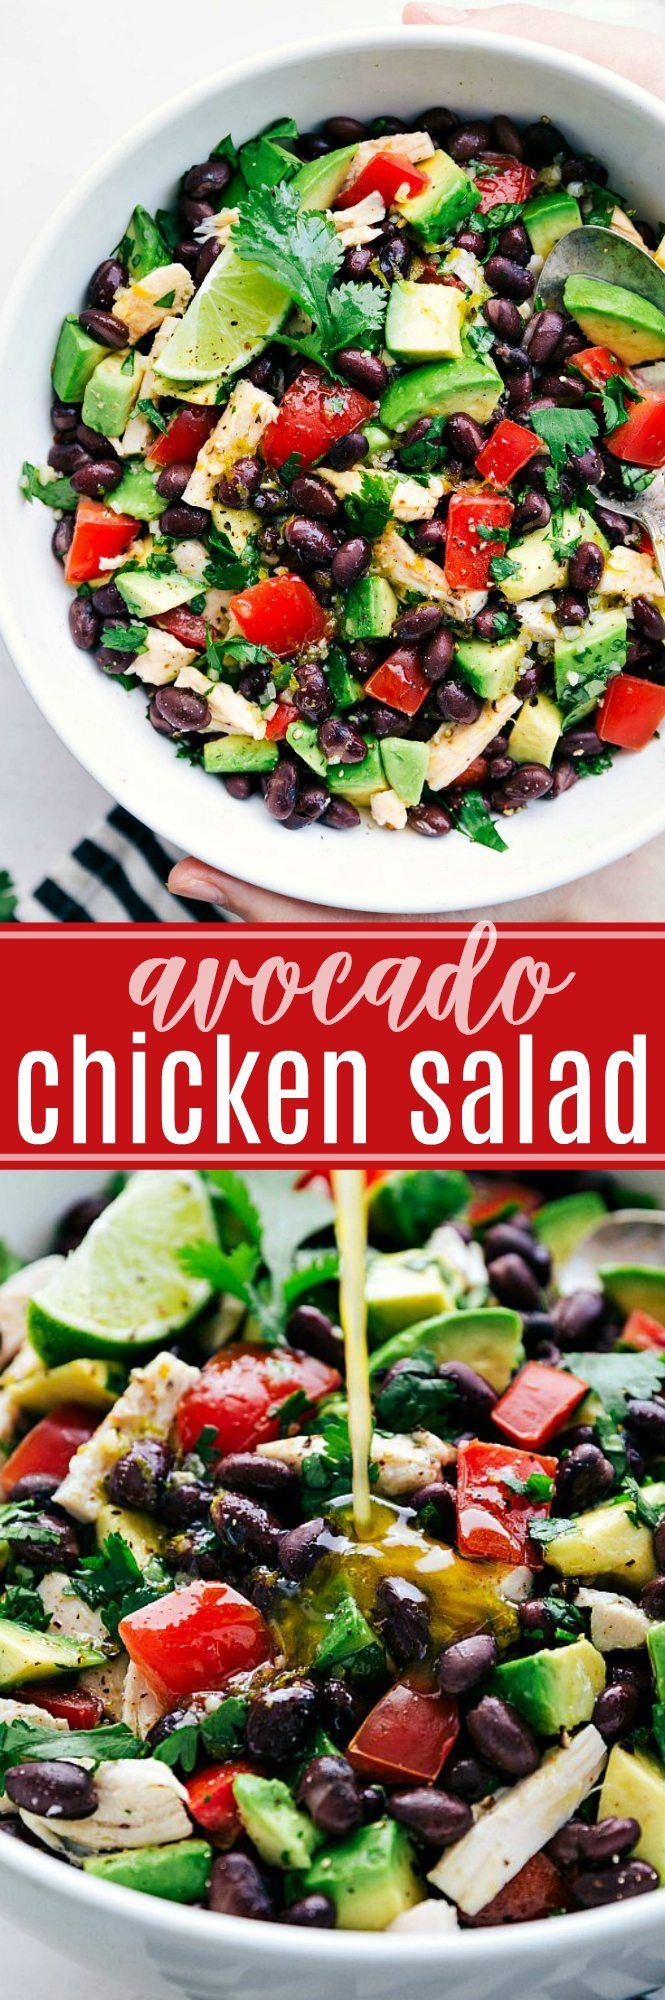 This Mexican flavor-inspired Avocado Chicken Salad is healthy and packed with delicious flavors! This avocado chicken salad is a bit unique, but we have been going crazy for it lately. It's so health